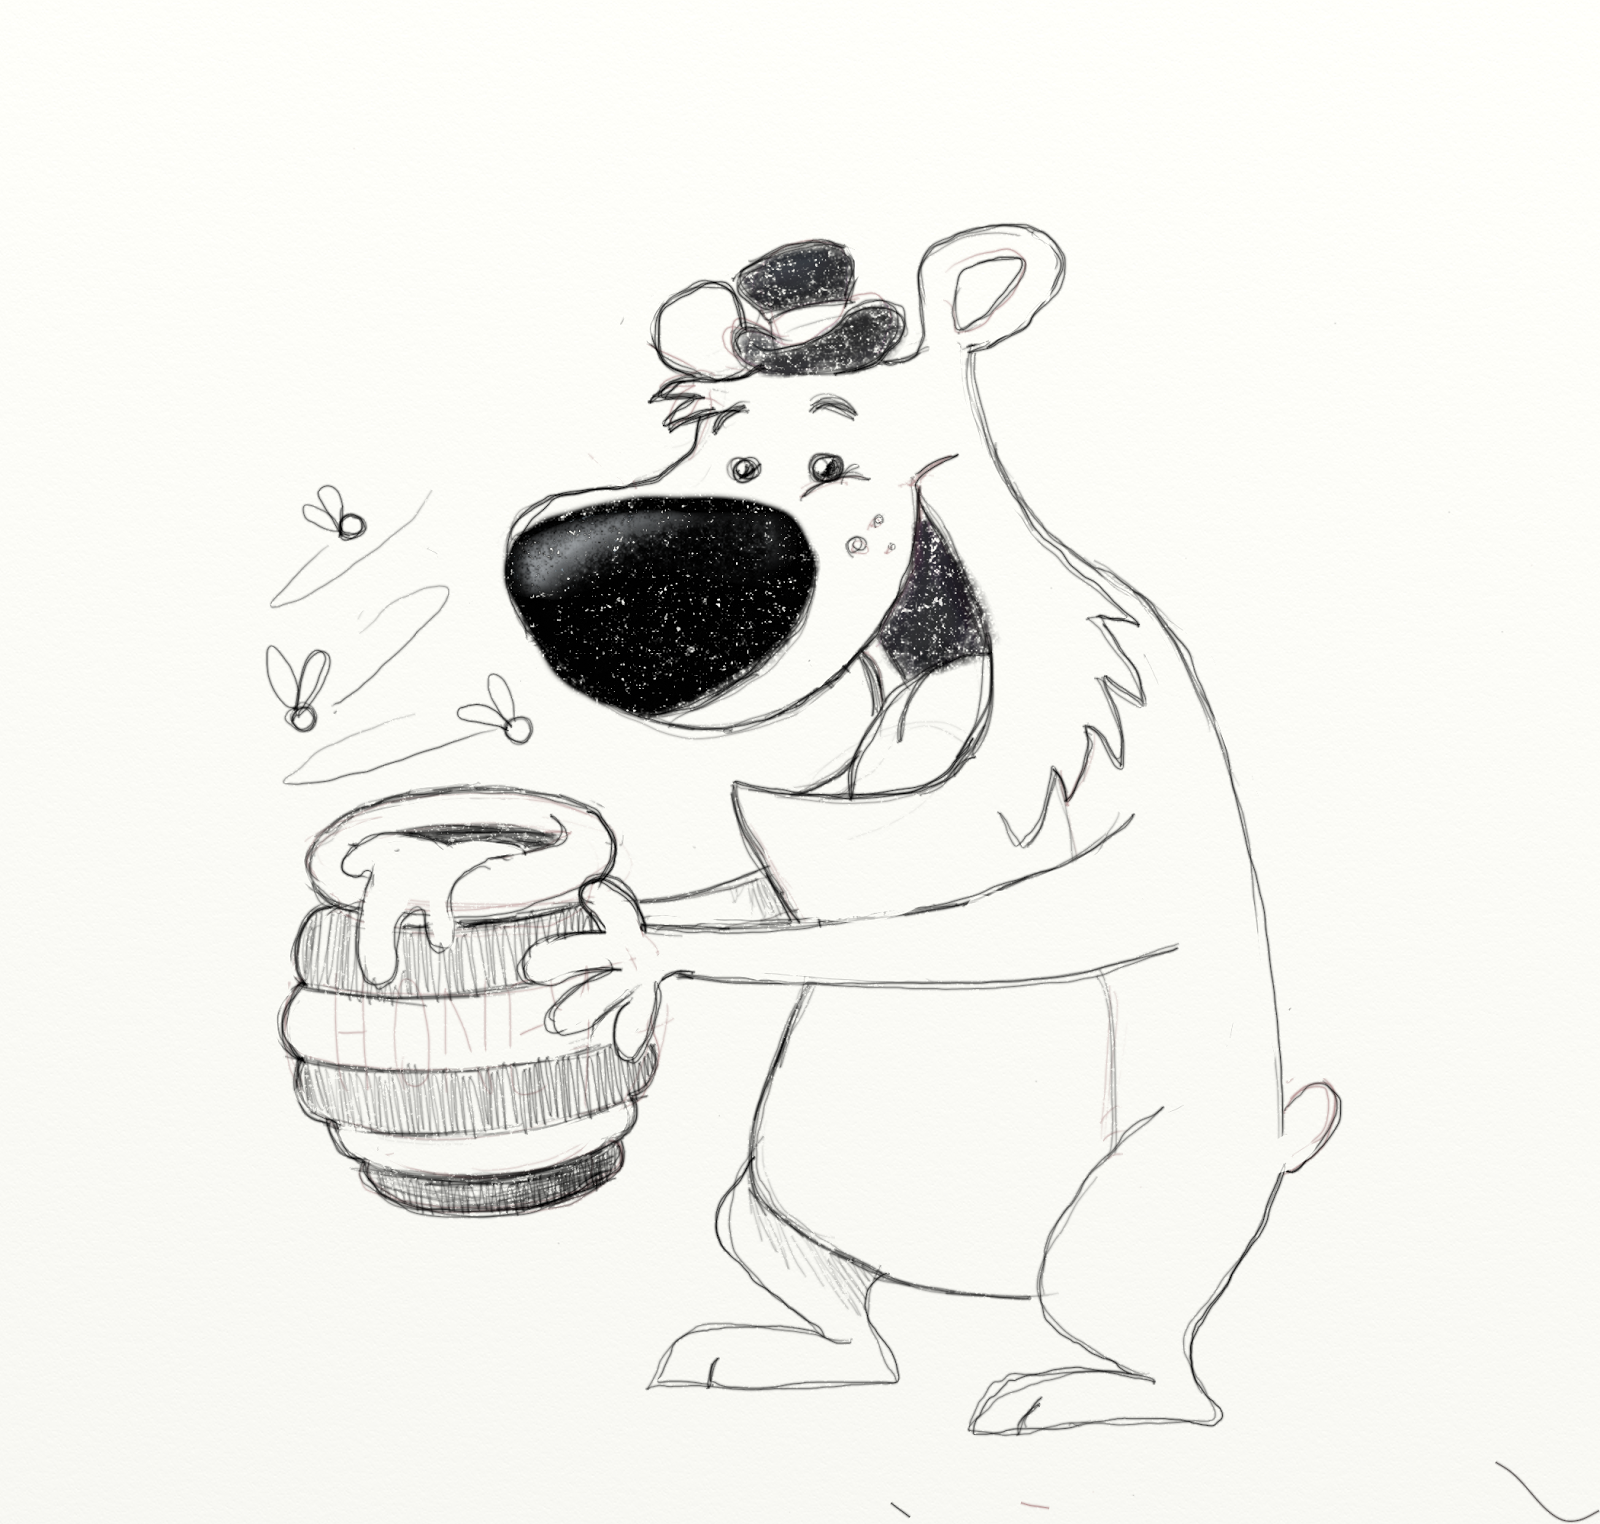 arrrggghhh another blog daily quick sketch stealing honey